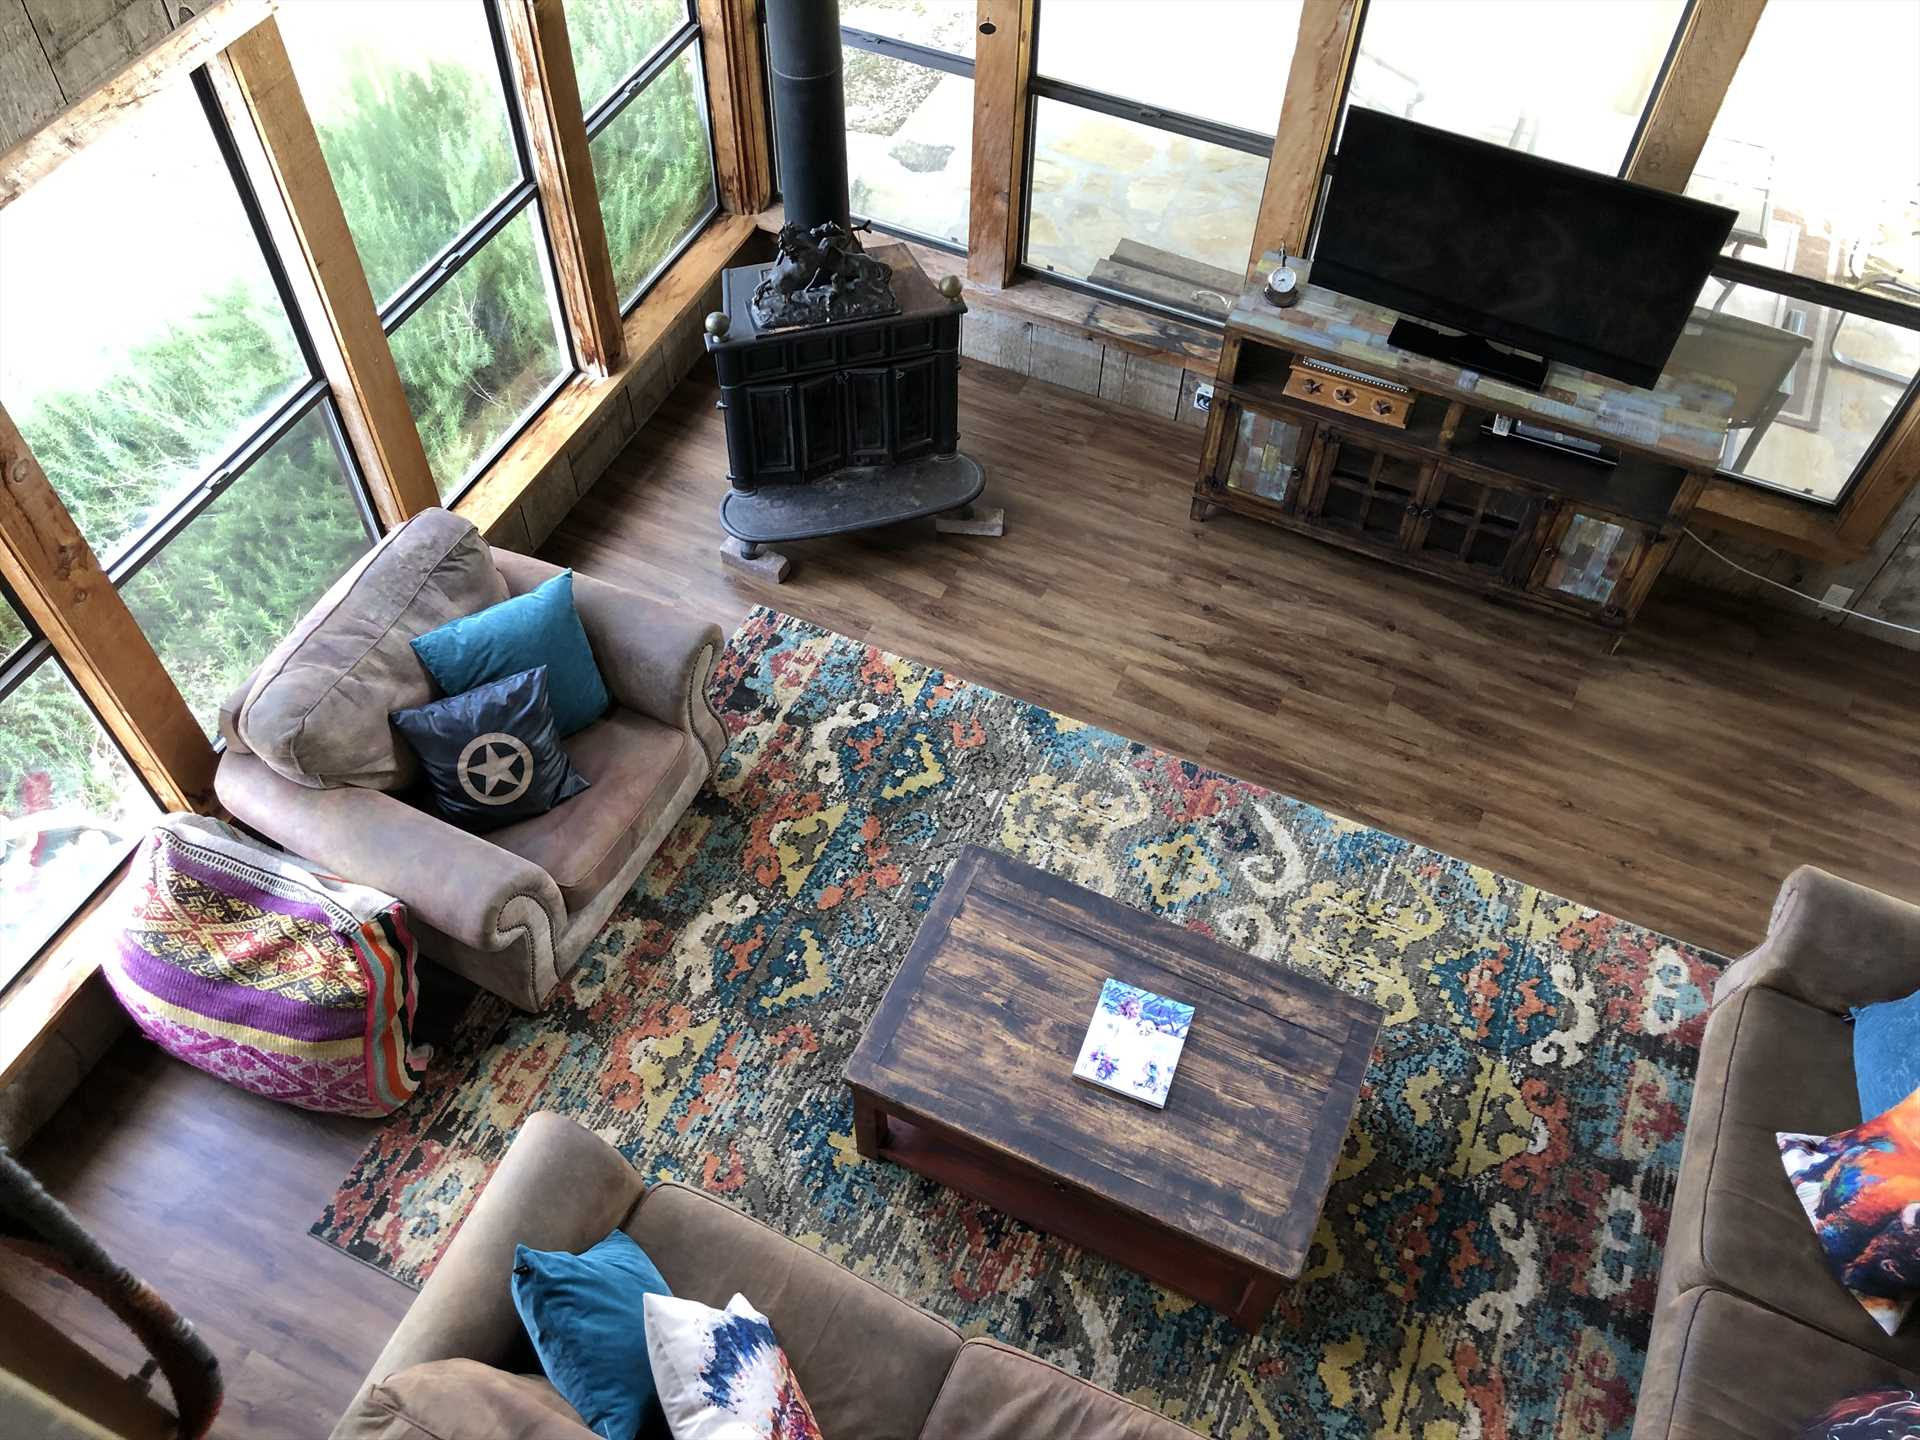 Additional extras you'll find in the Bluff House are a smart TV with Roku and 40 free channels, Wifi Internet service, and soothing central air and heat.